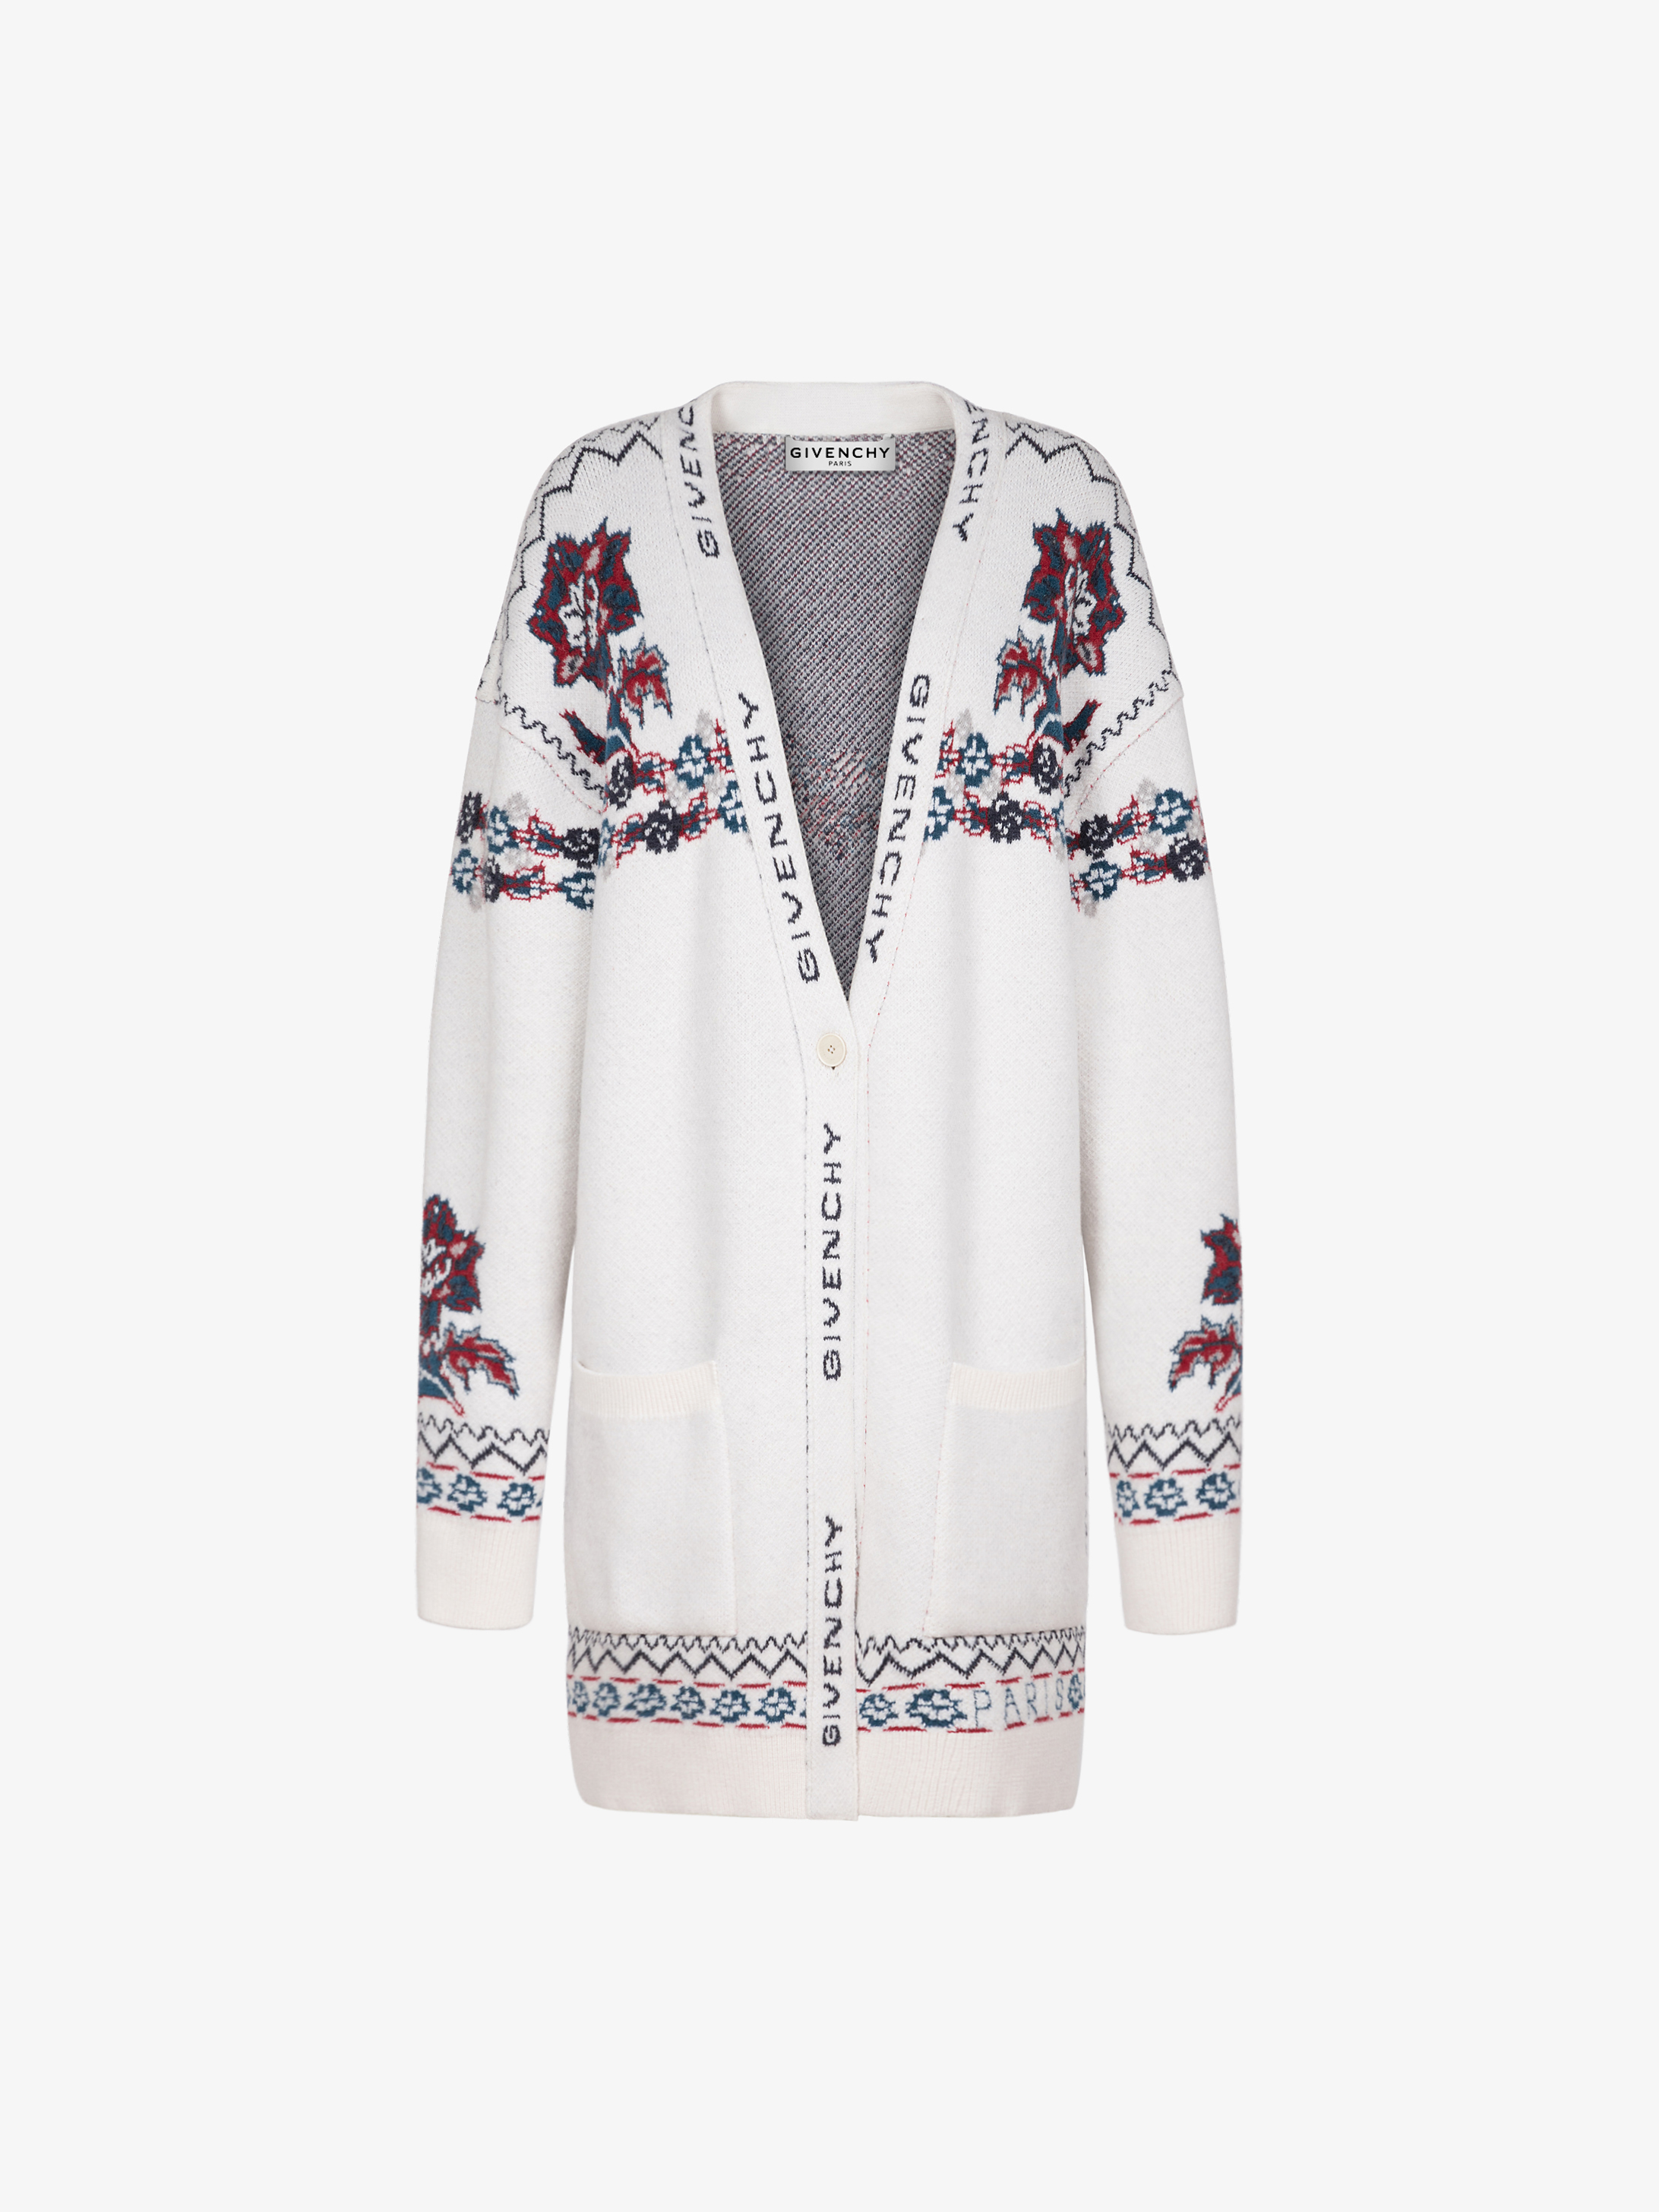 GIVENCHY long cardigan in floral jacquard